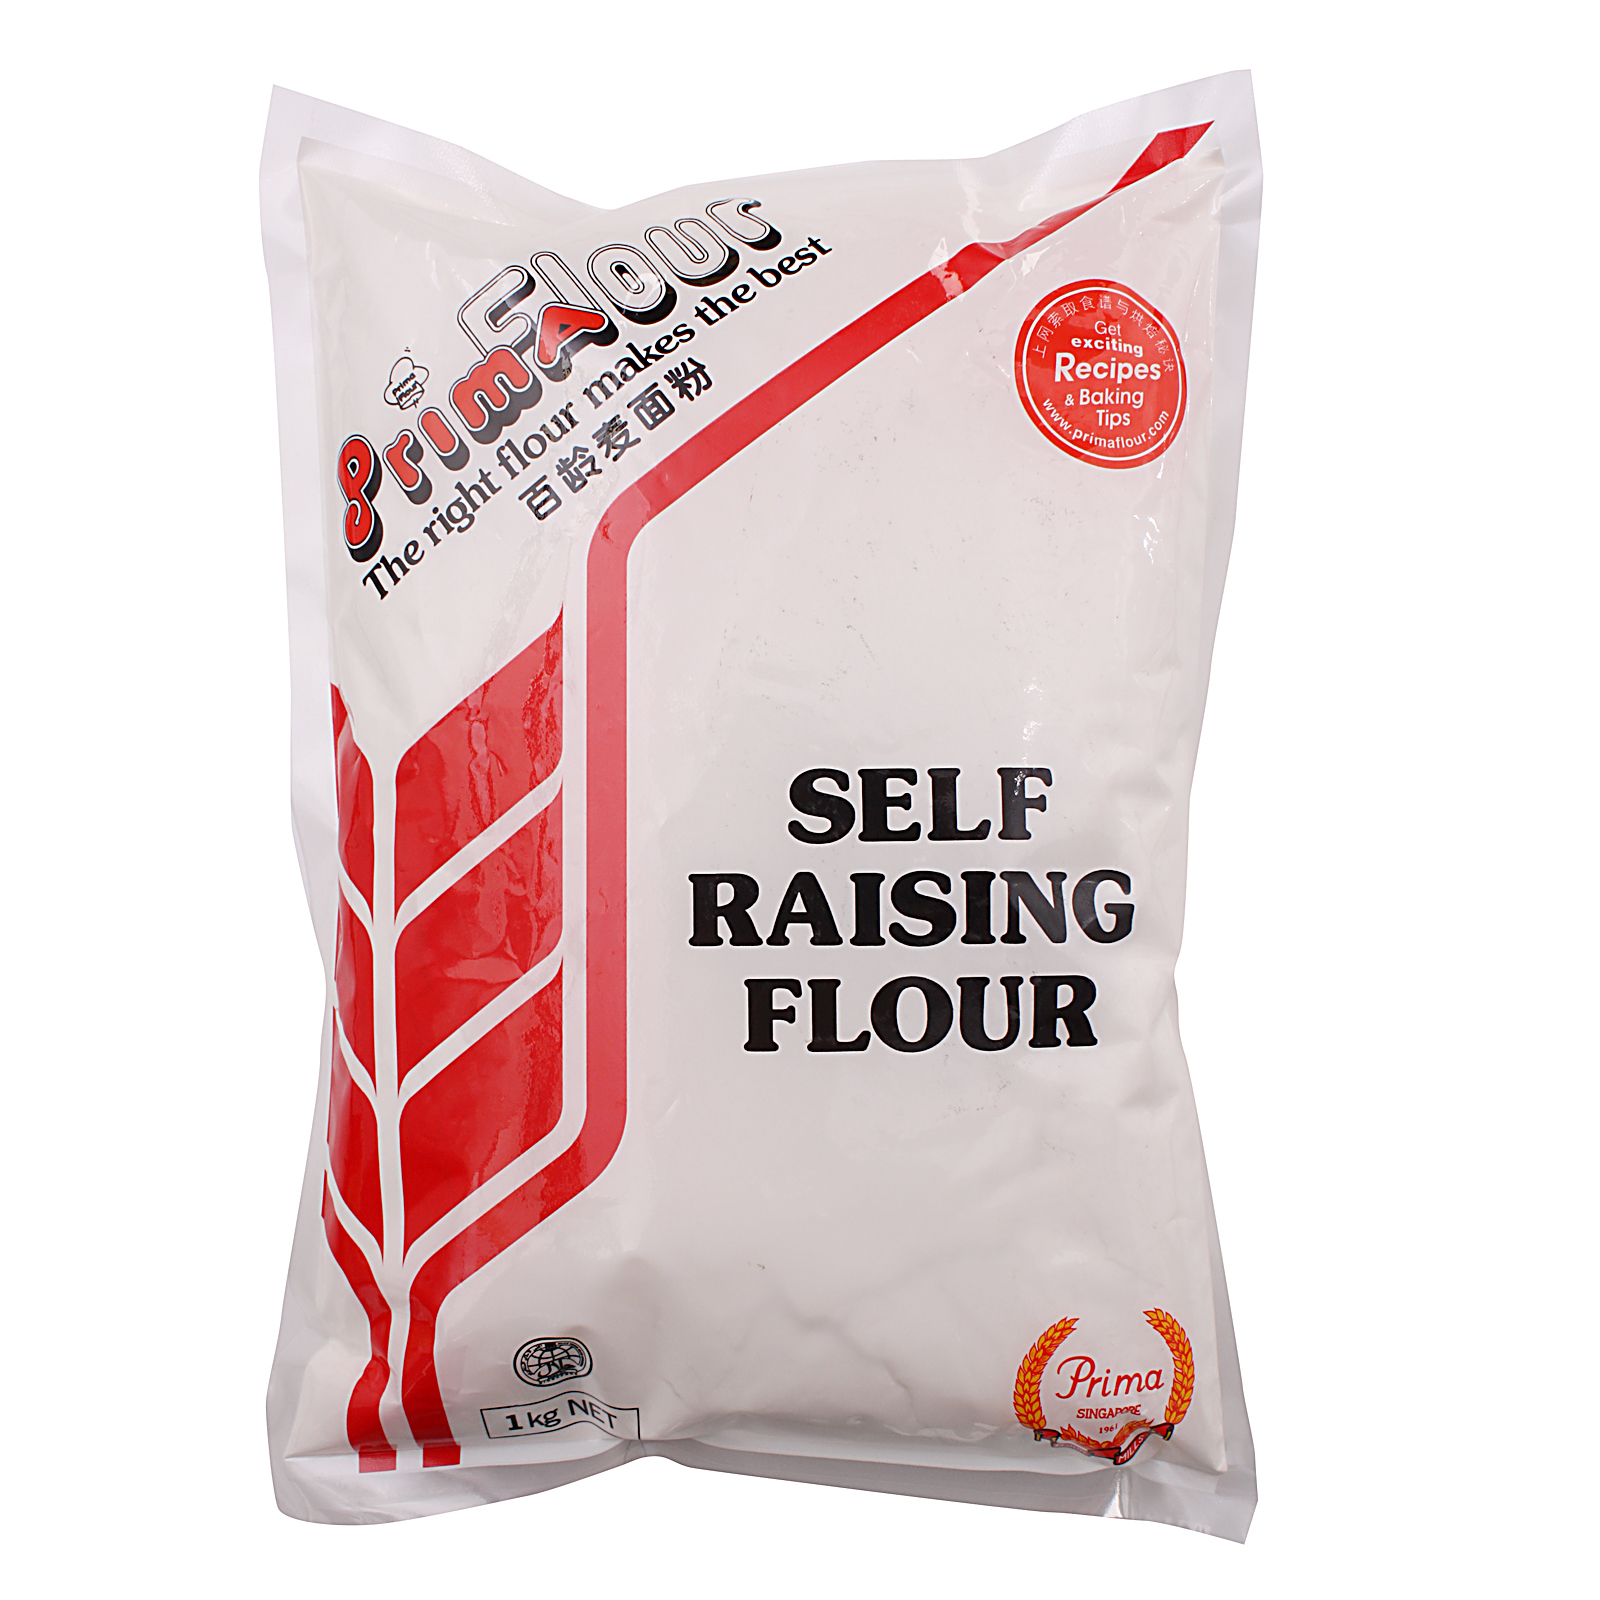 Can You Make Cake With Strong Flour